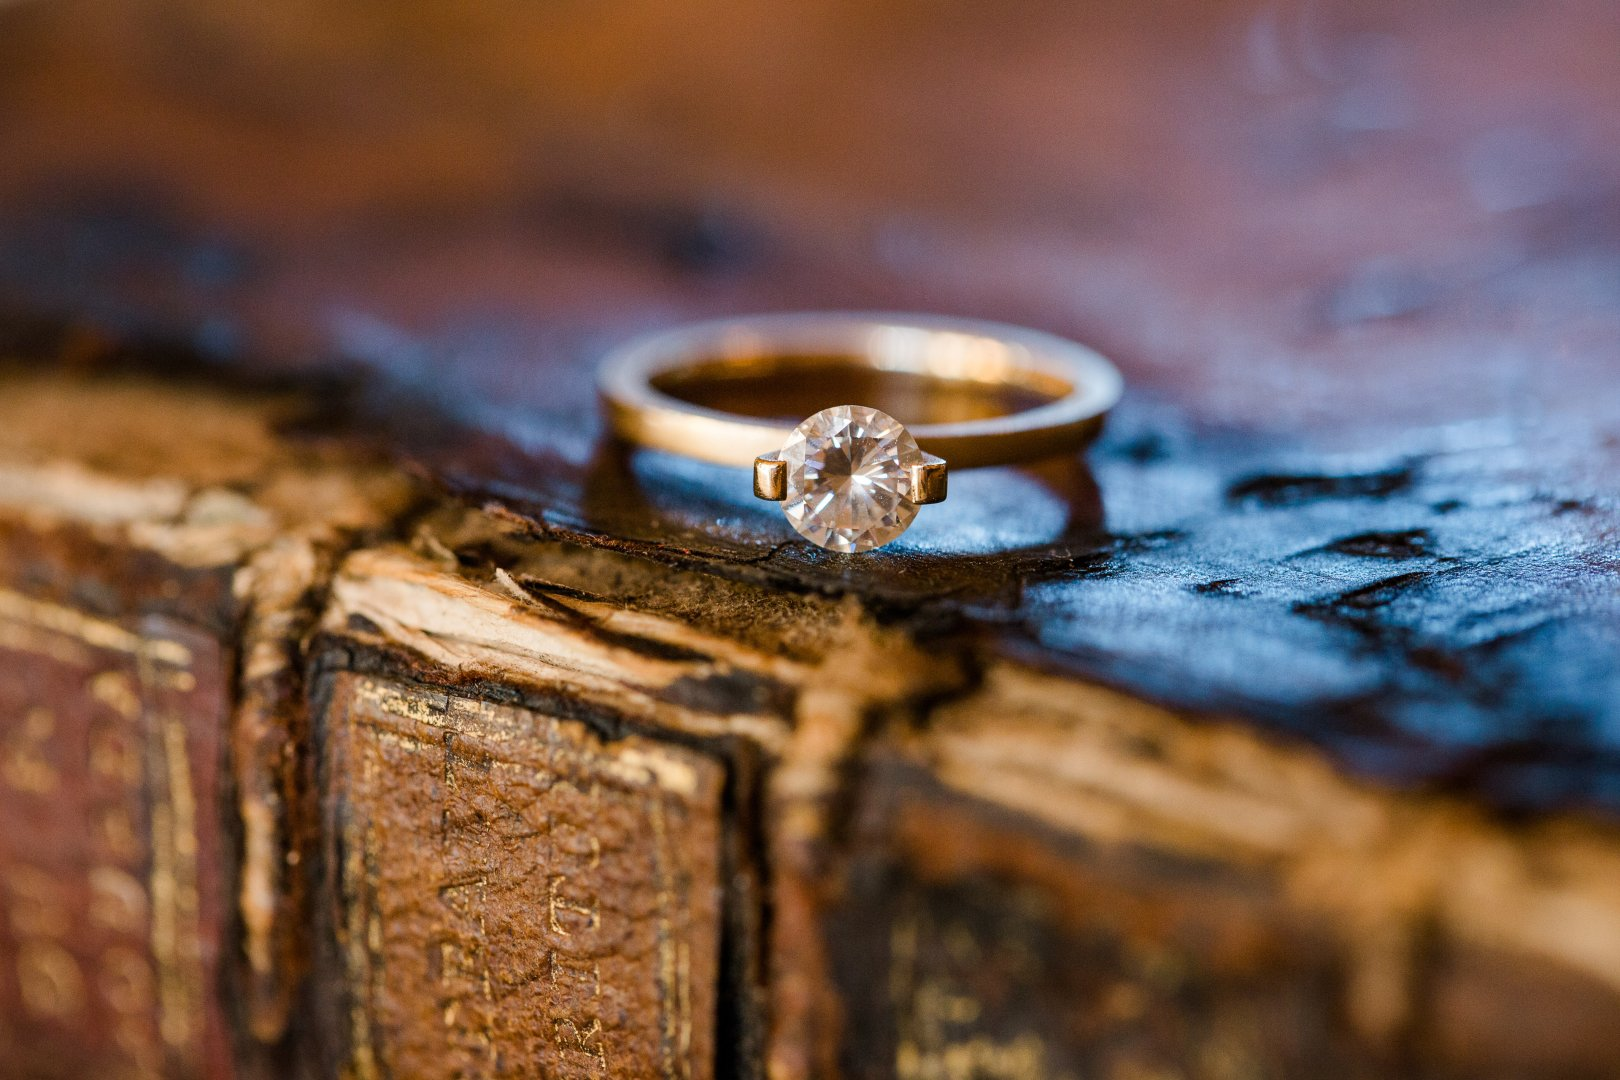 Ring Wedding ring Wedding ceremony supply Engagement ring Jewellery Fashion accessory Macro photography Still life photography Body jewelry Wood Close-up Diamond Photography Engagement Metal Silver